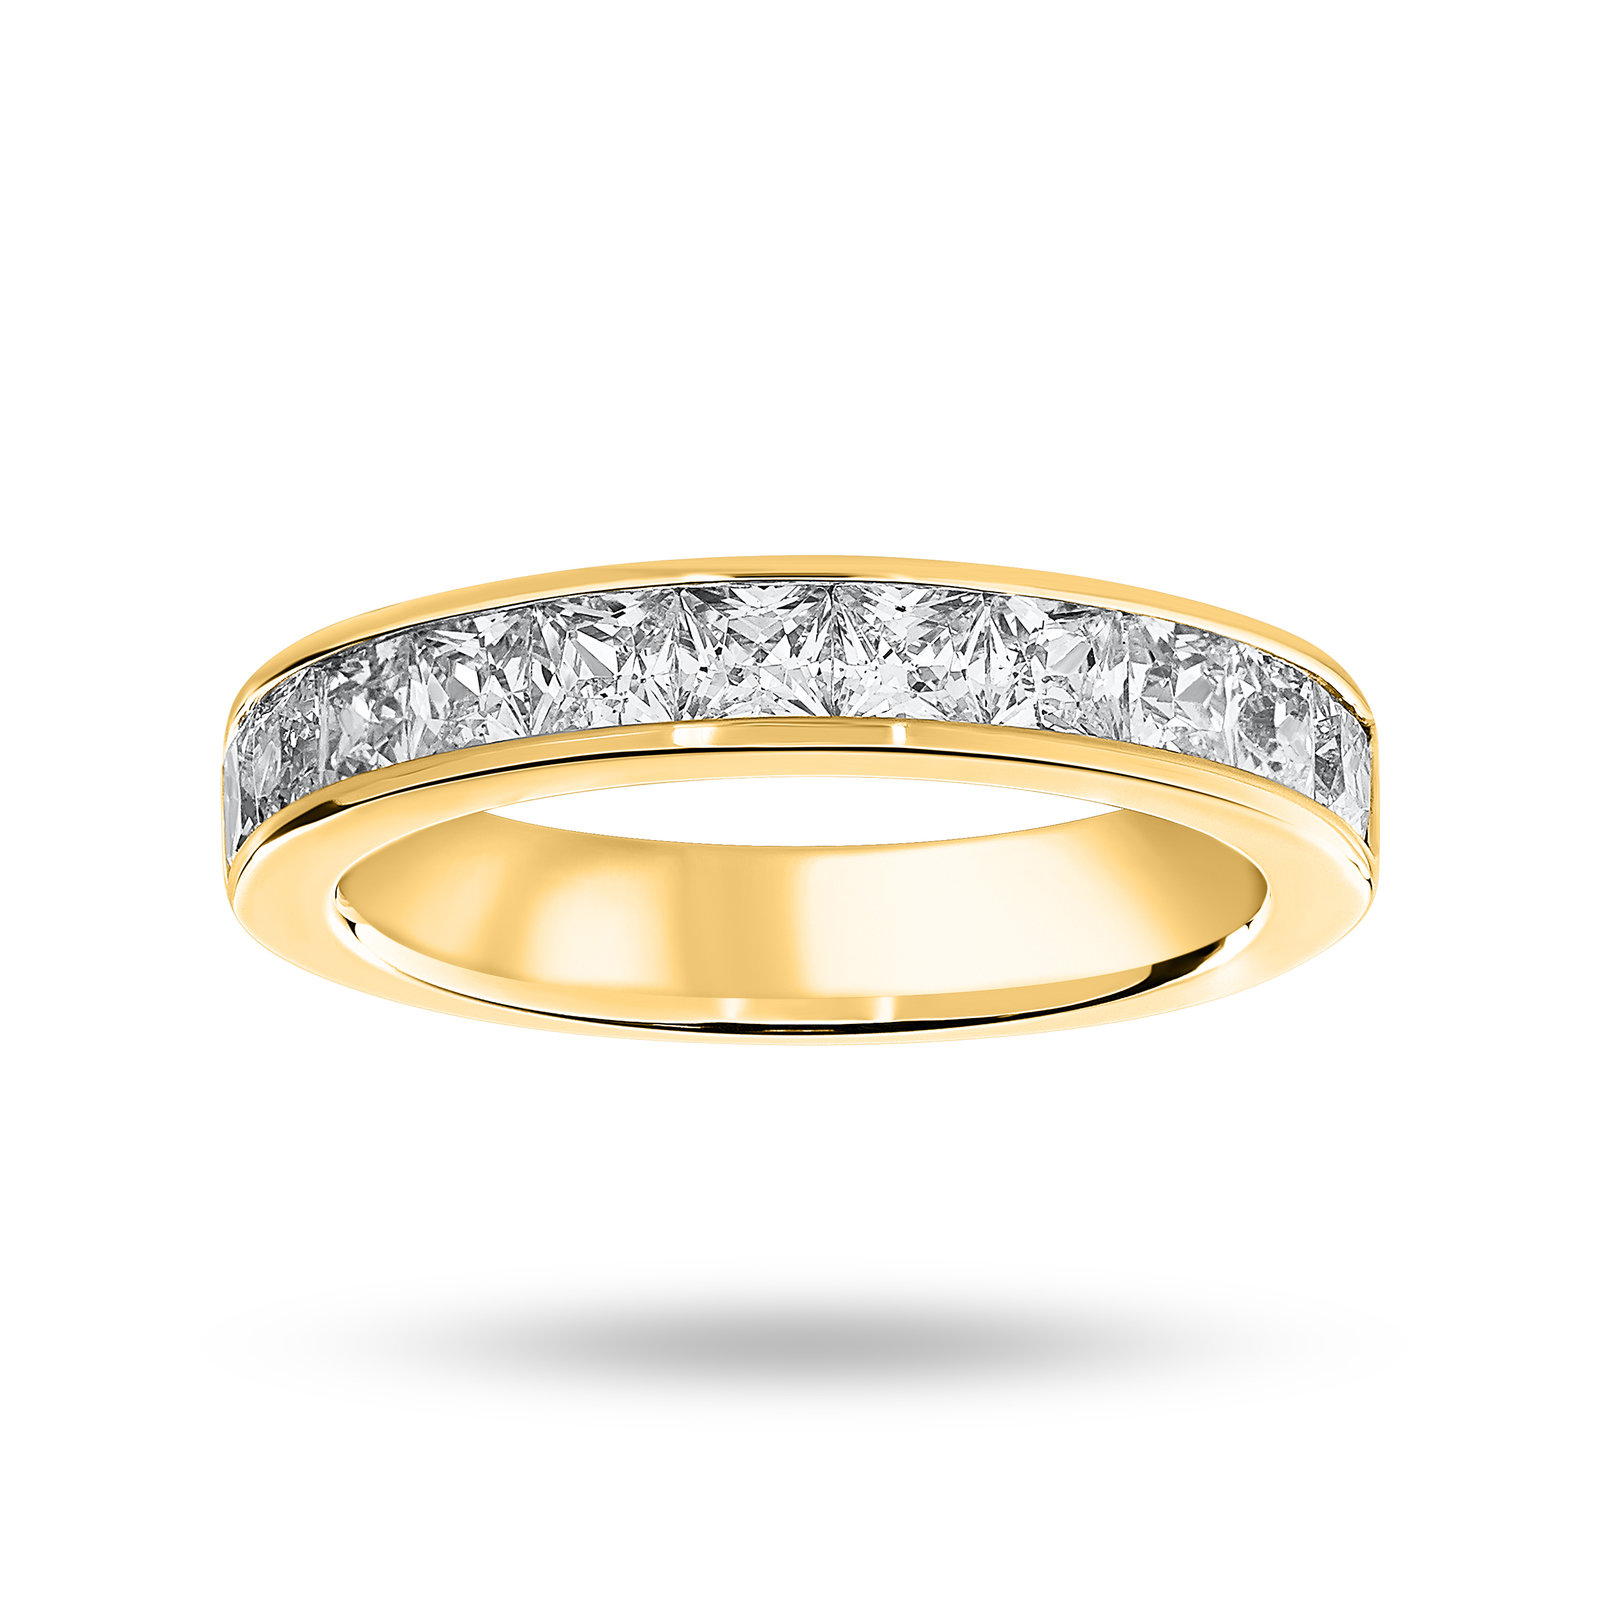 9 Carat Yellow Gold 1.50 Carat Princess Cut Half Eternity Ring